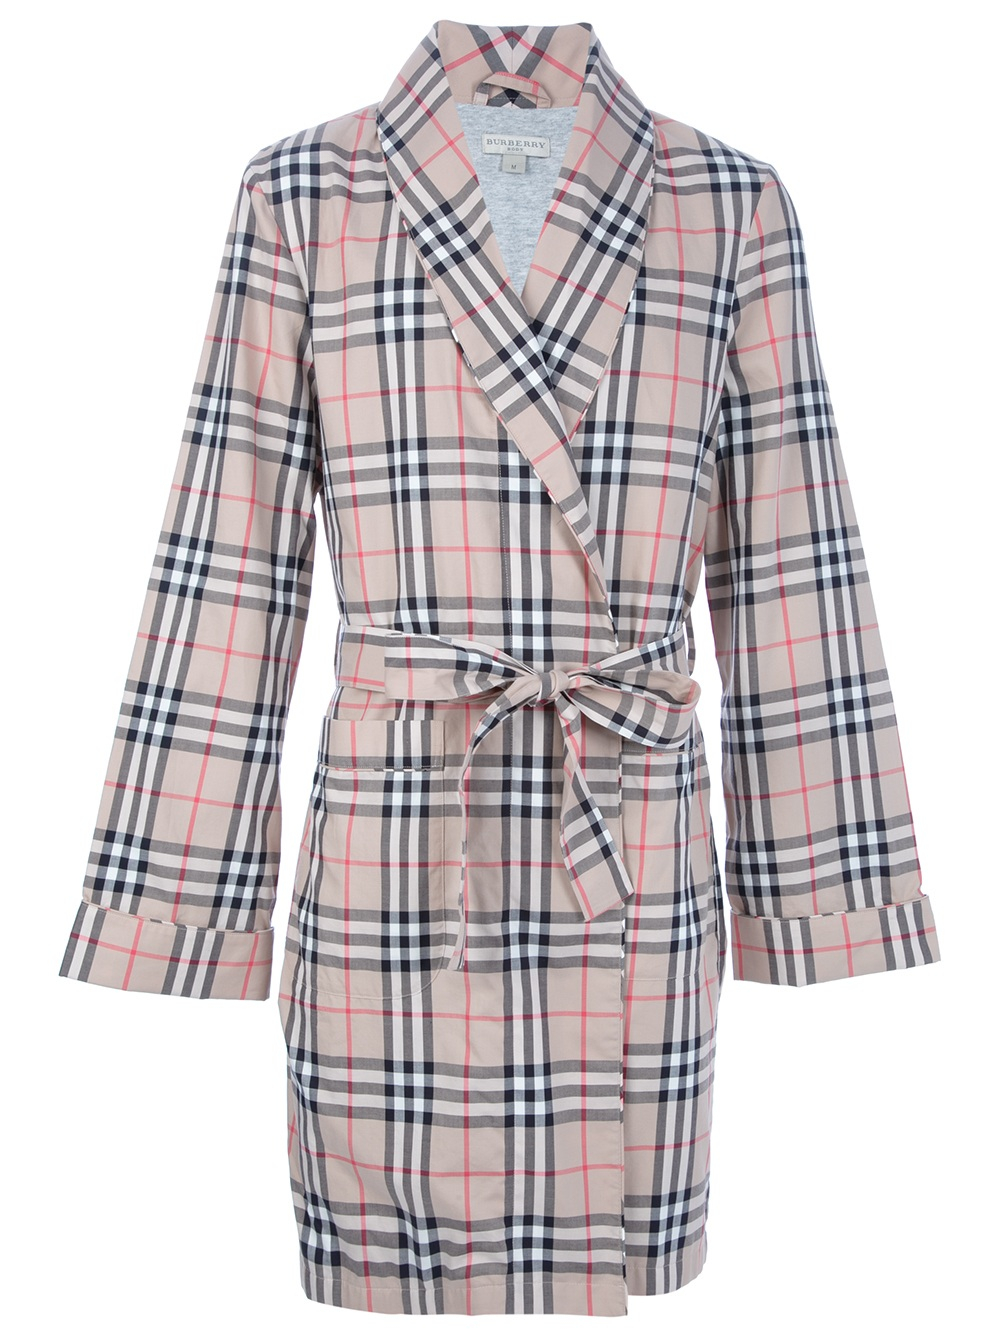 Lyst - Burberry Brit Checked Dressing Gown in Natural for Men